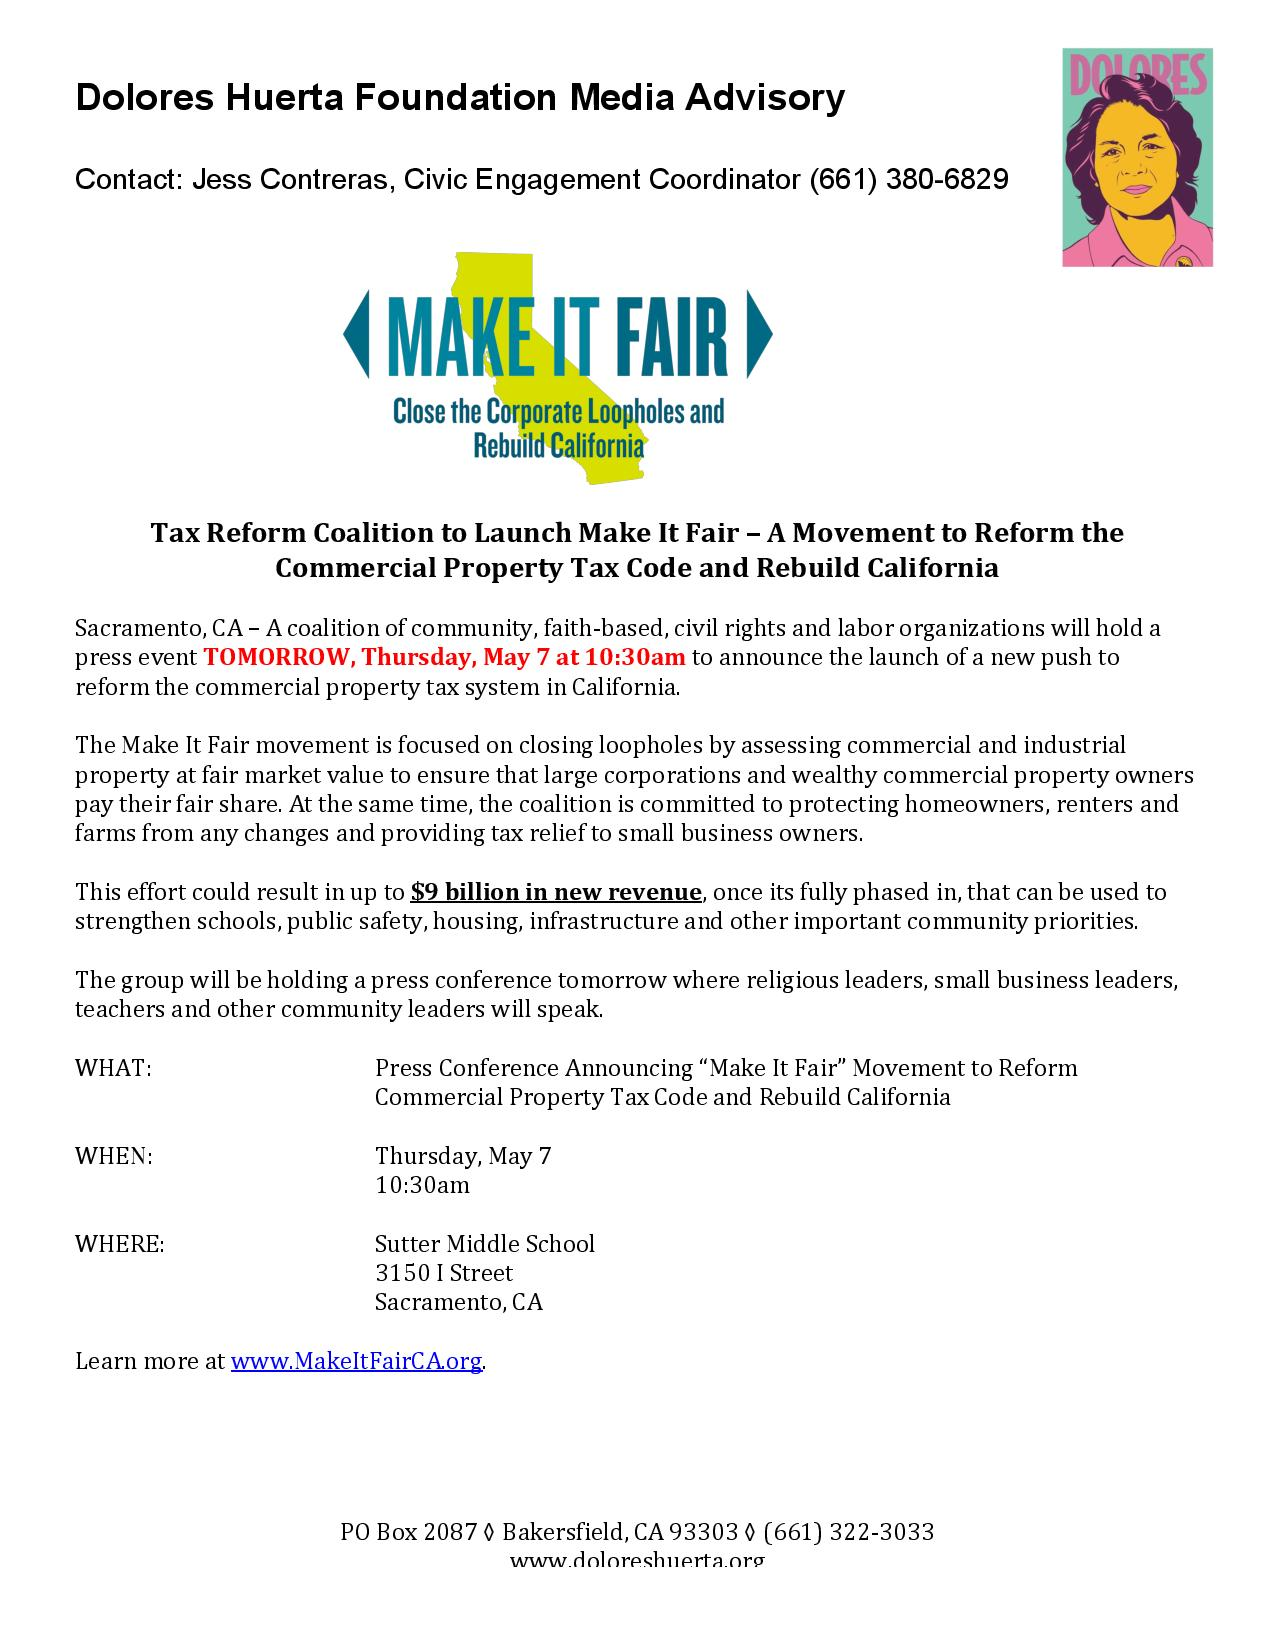 make-it-fair-press-media-advisory-5-7-15-1-page-001